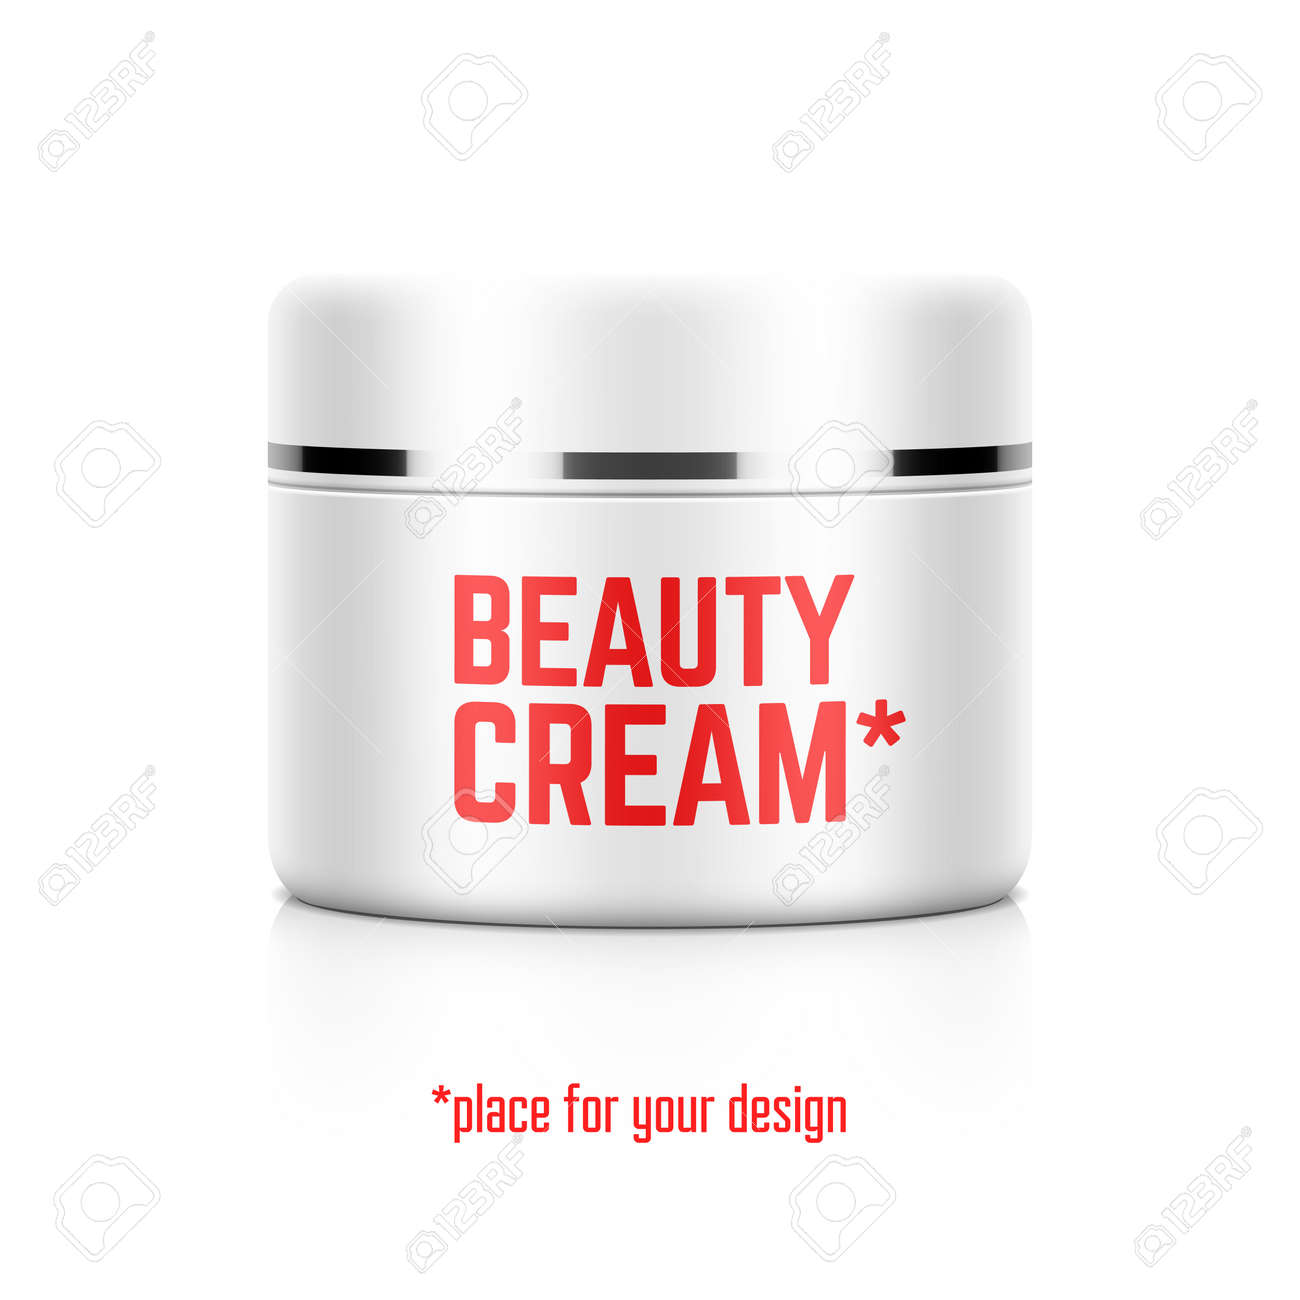 Beauty Cream Jar Template With Place For Your Design Royalty Free ...